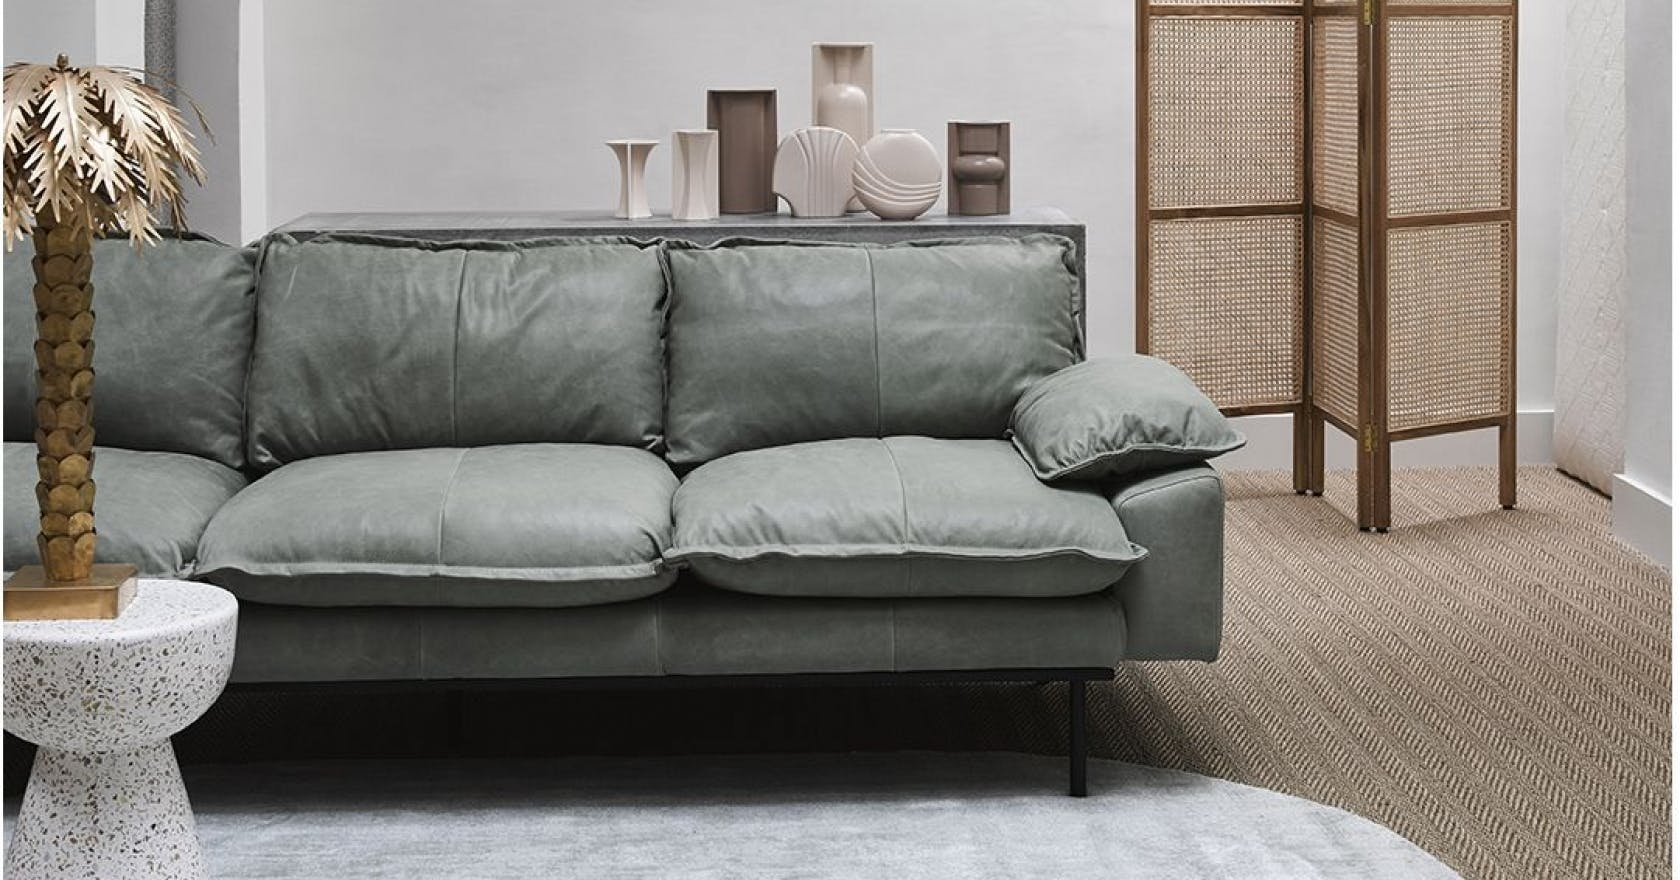 Concrete homeware: meet the accessories trend that's updating homes for autumn/winter 2020